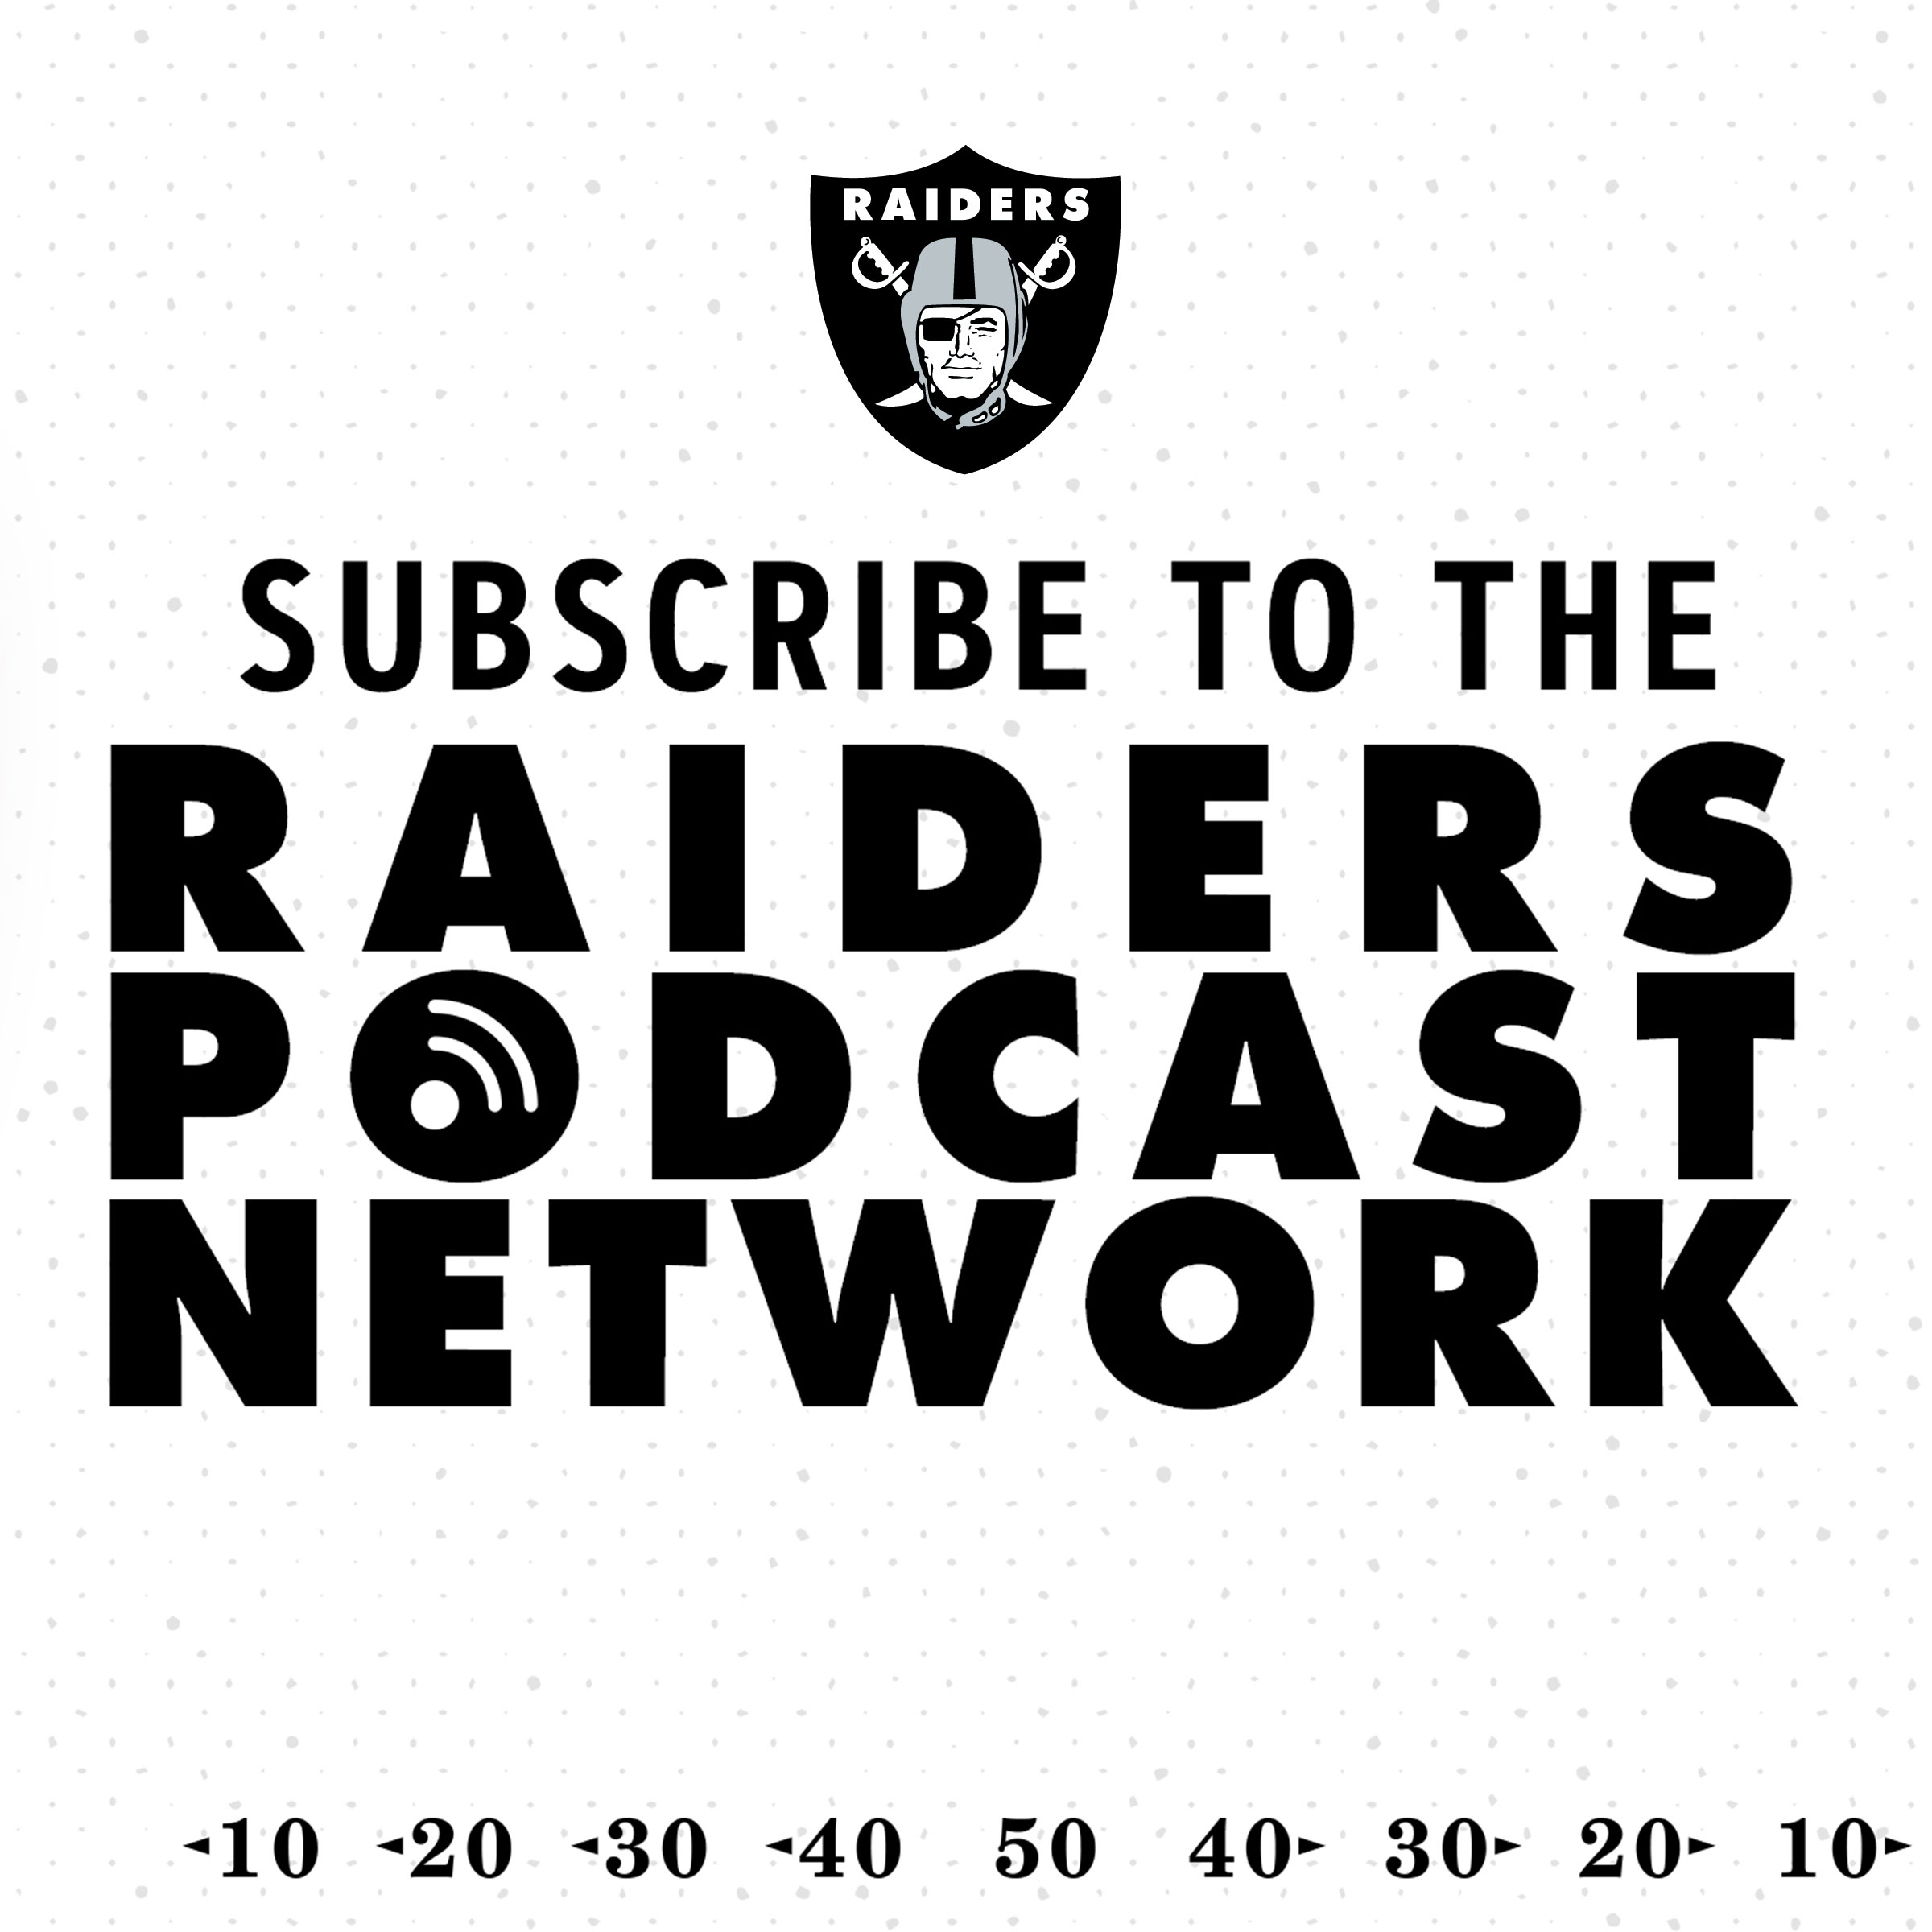 Raiders Podcast Network